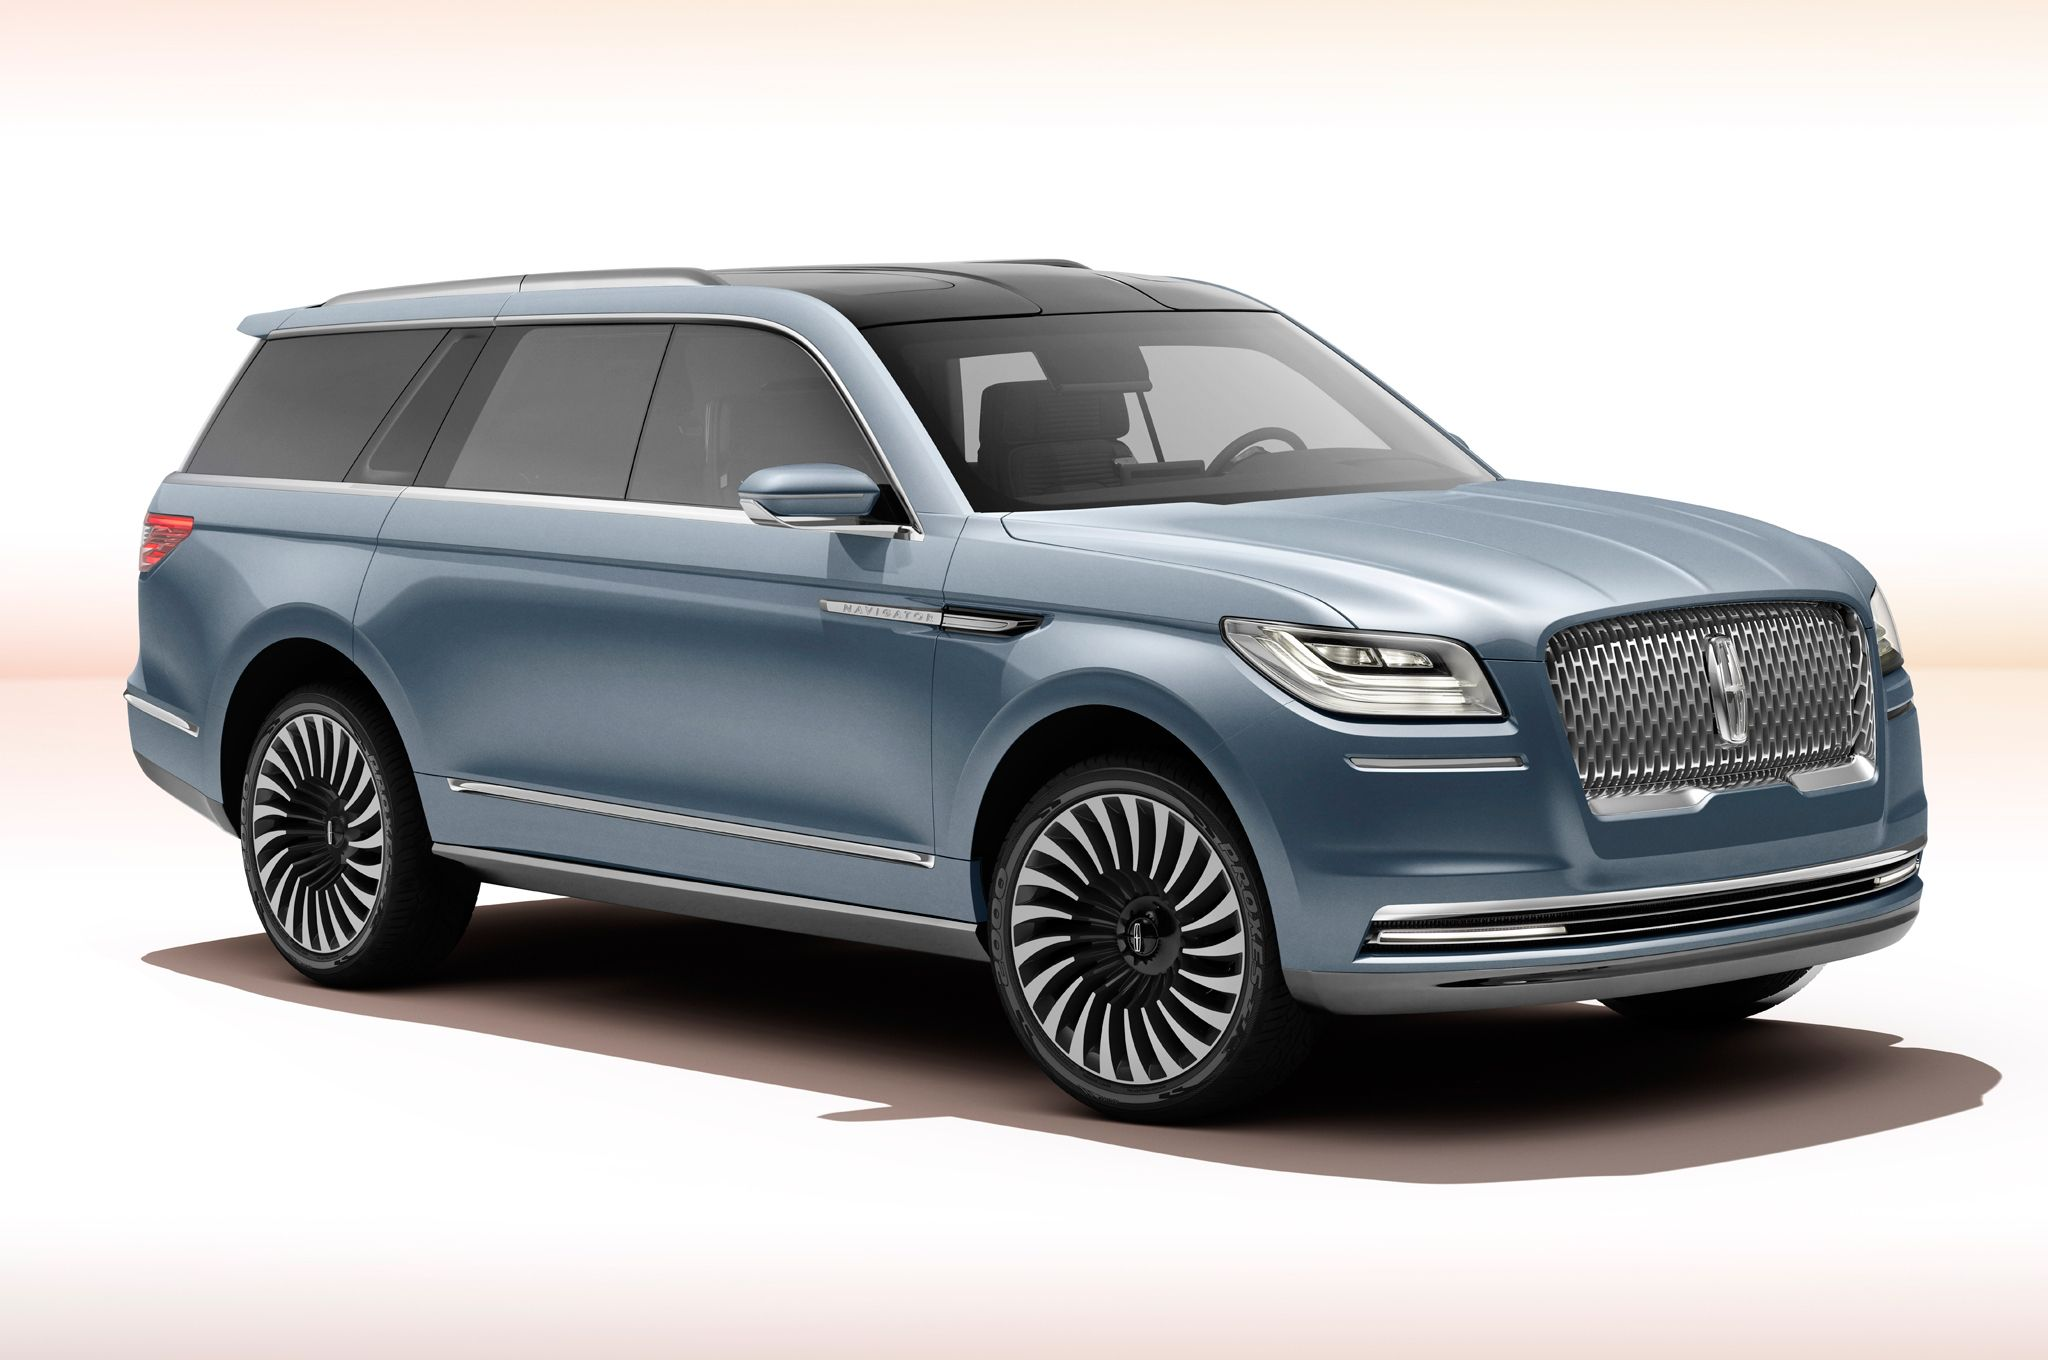 Lincoln Shows Gullwing Navigator Concept In New York Gullwings On A